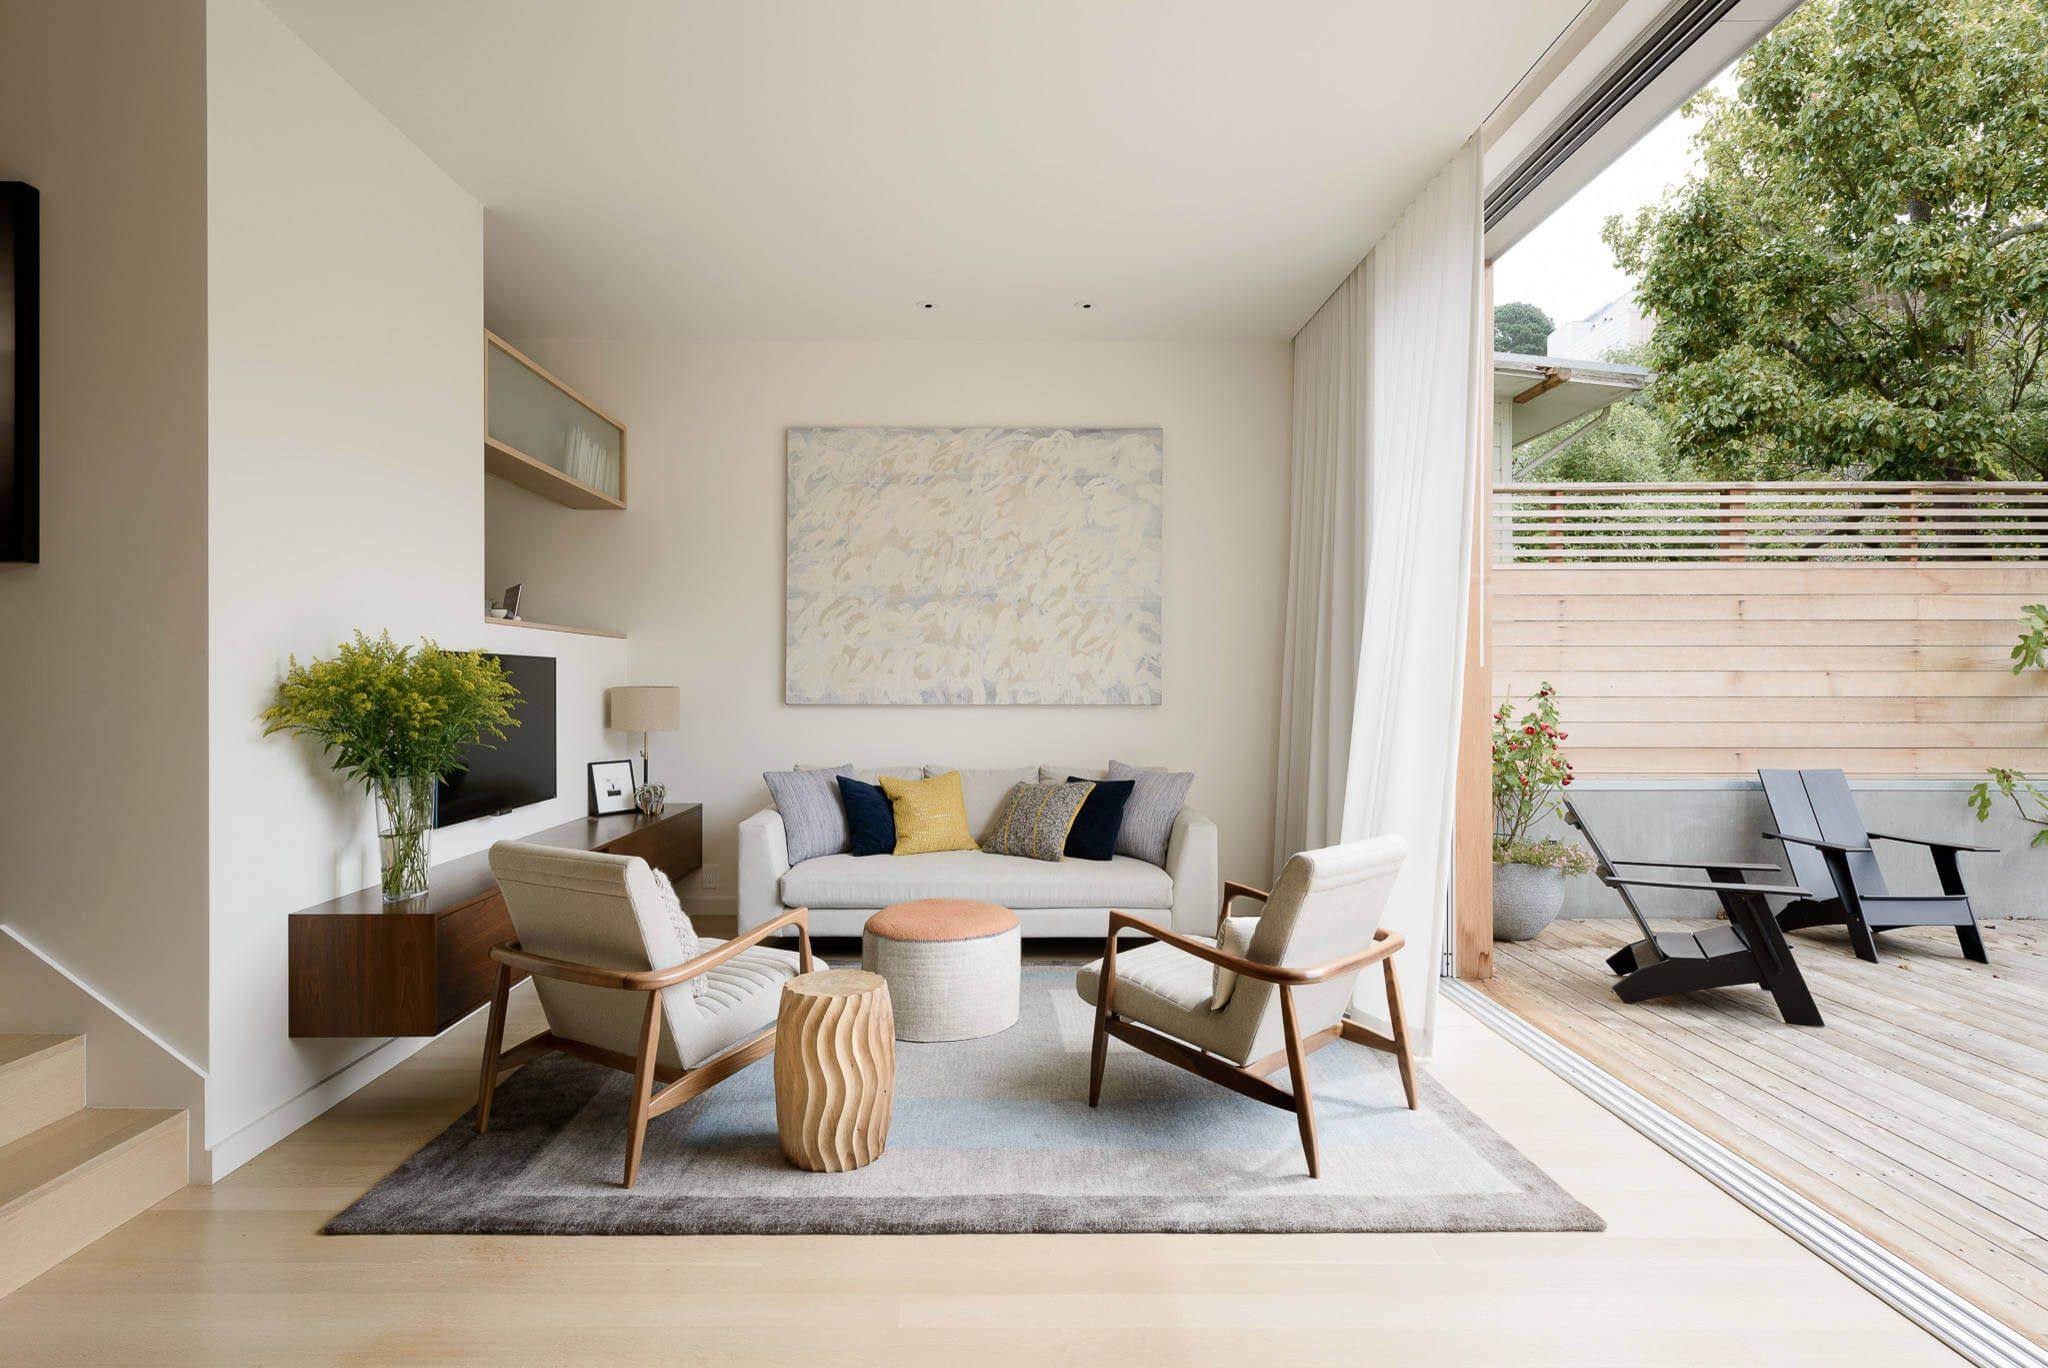 Wondrous Simple Open Terrace Living Room Fitty Wun House By Feldman Largest Home Design Picture Inspirations Pitcheantrous